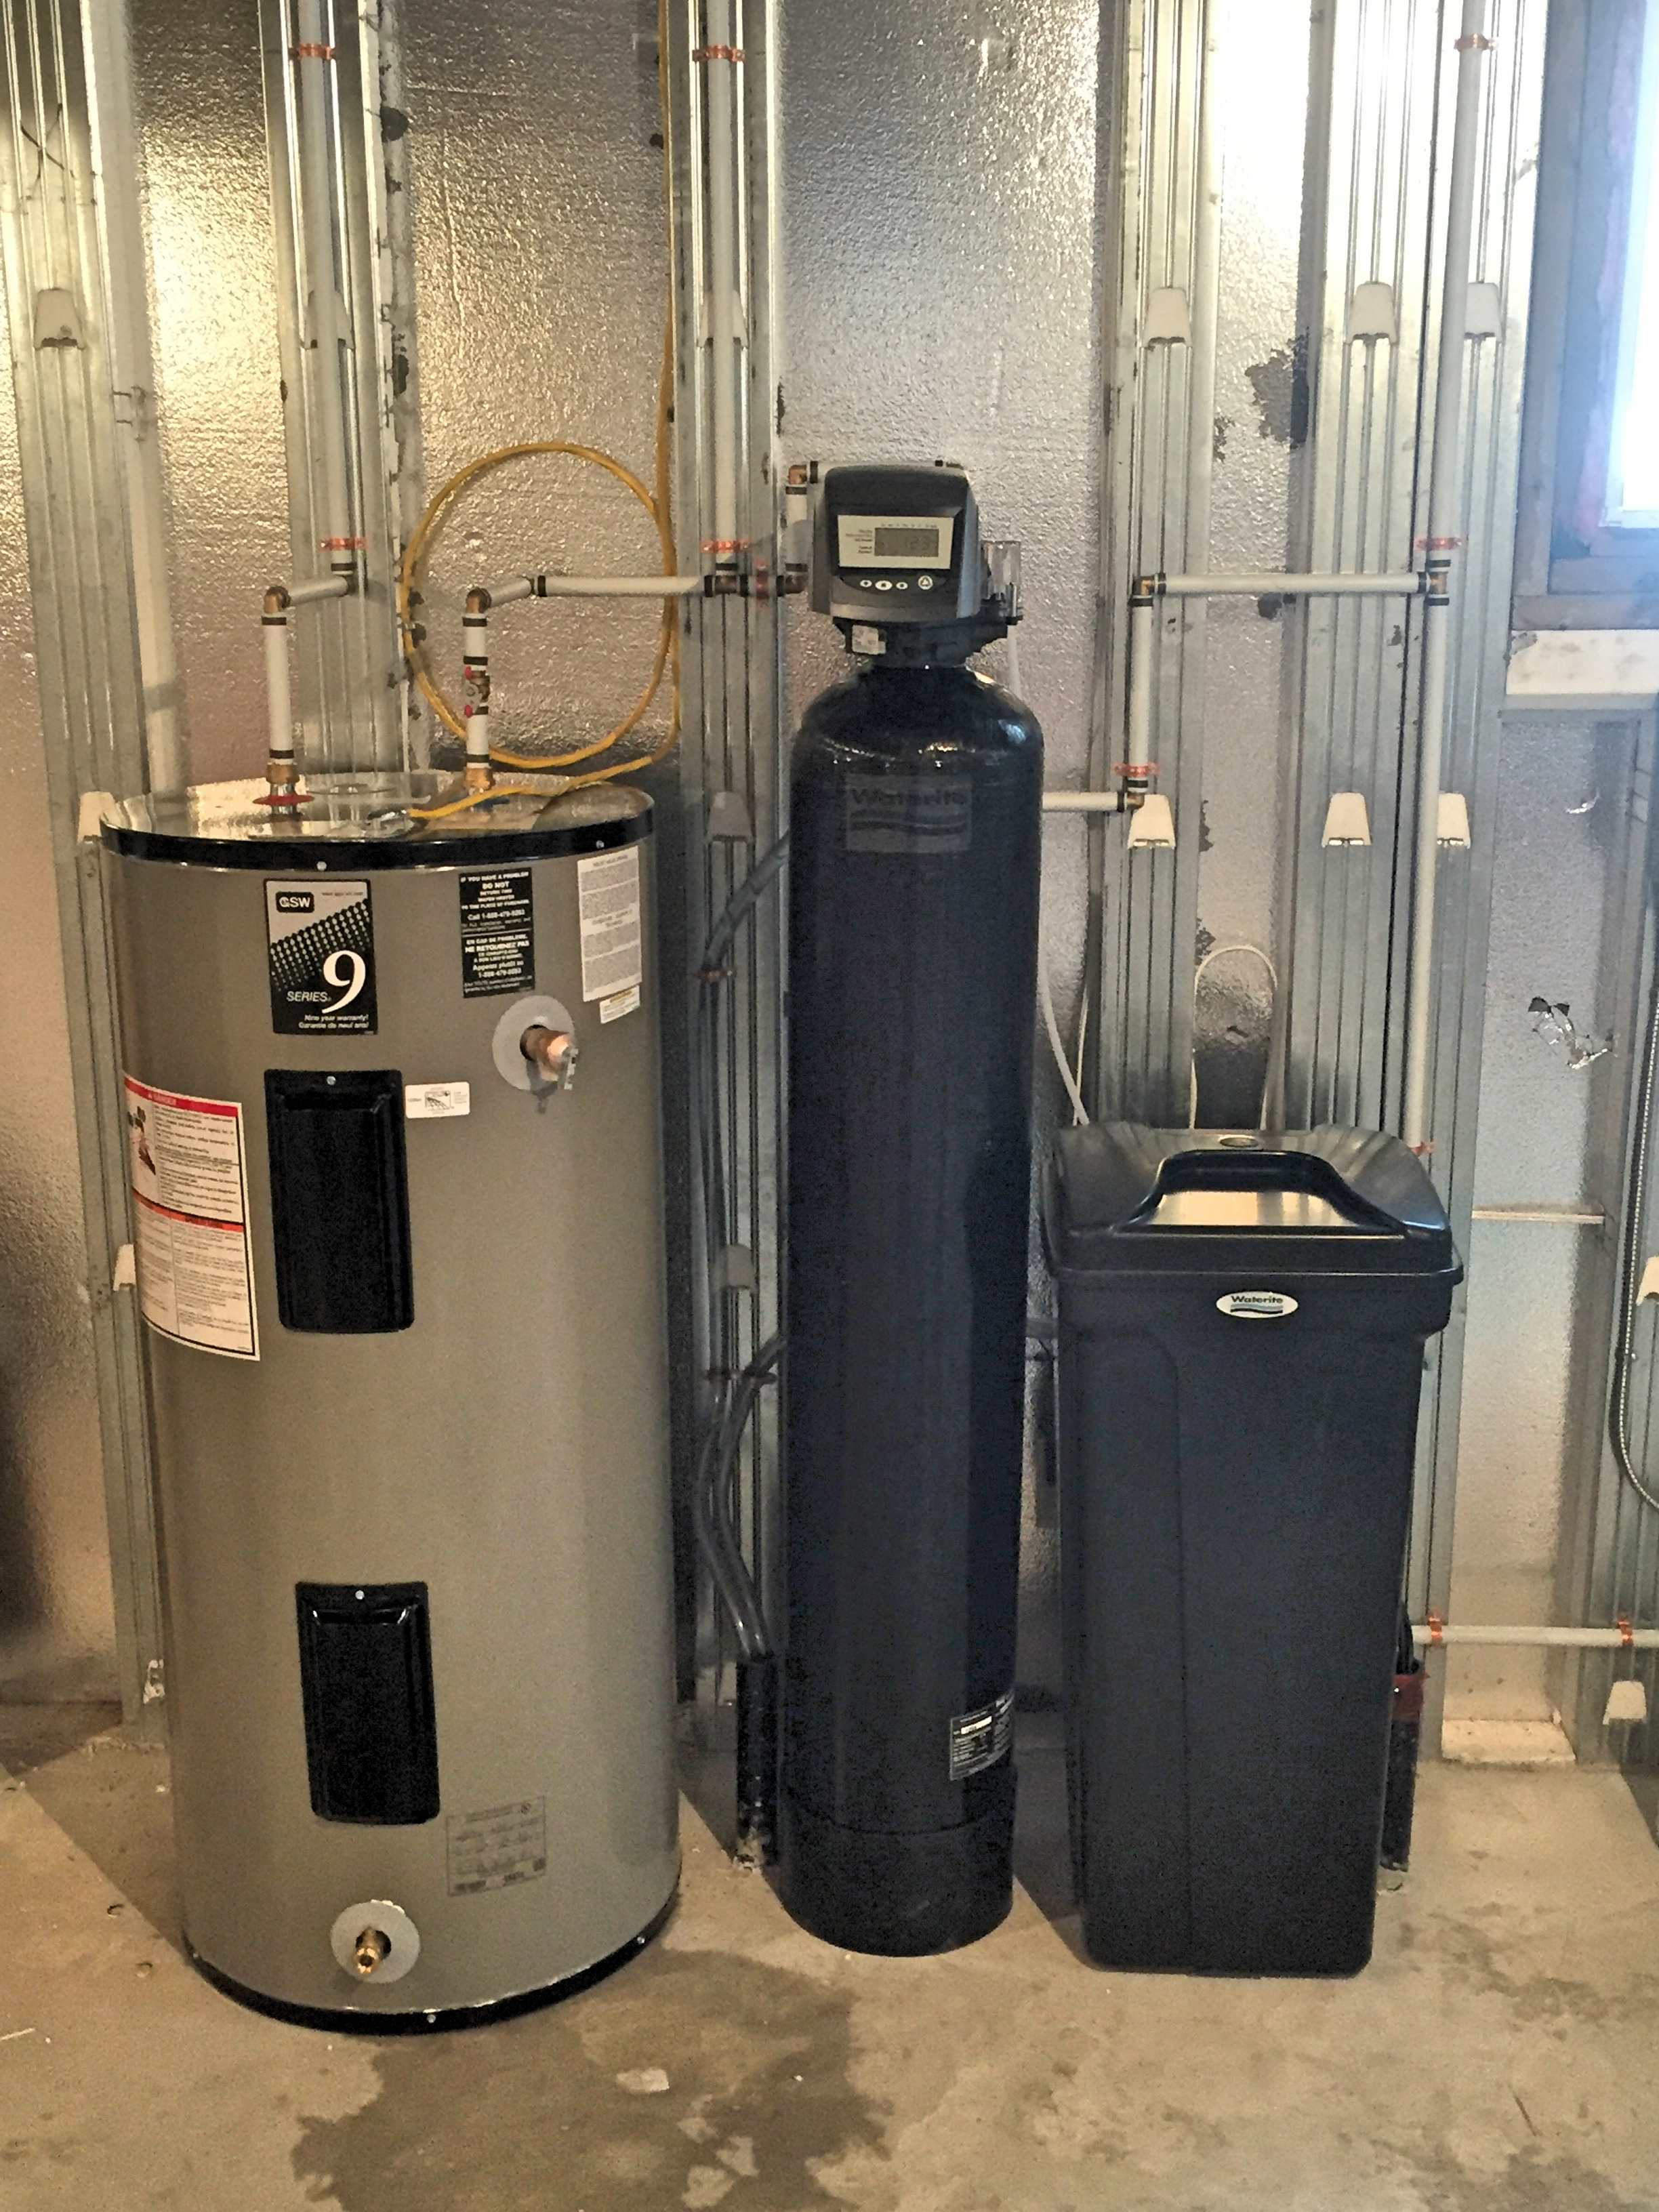 Beausejour Plumbing - Water Heater